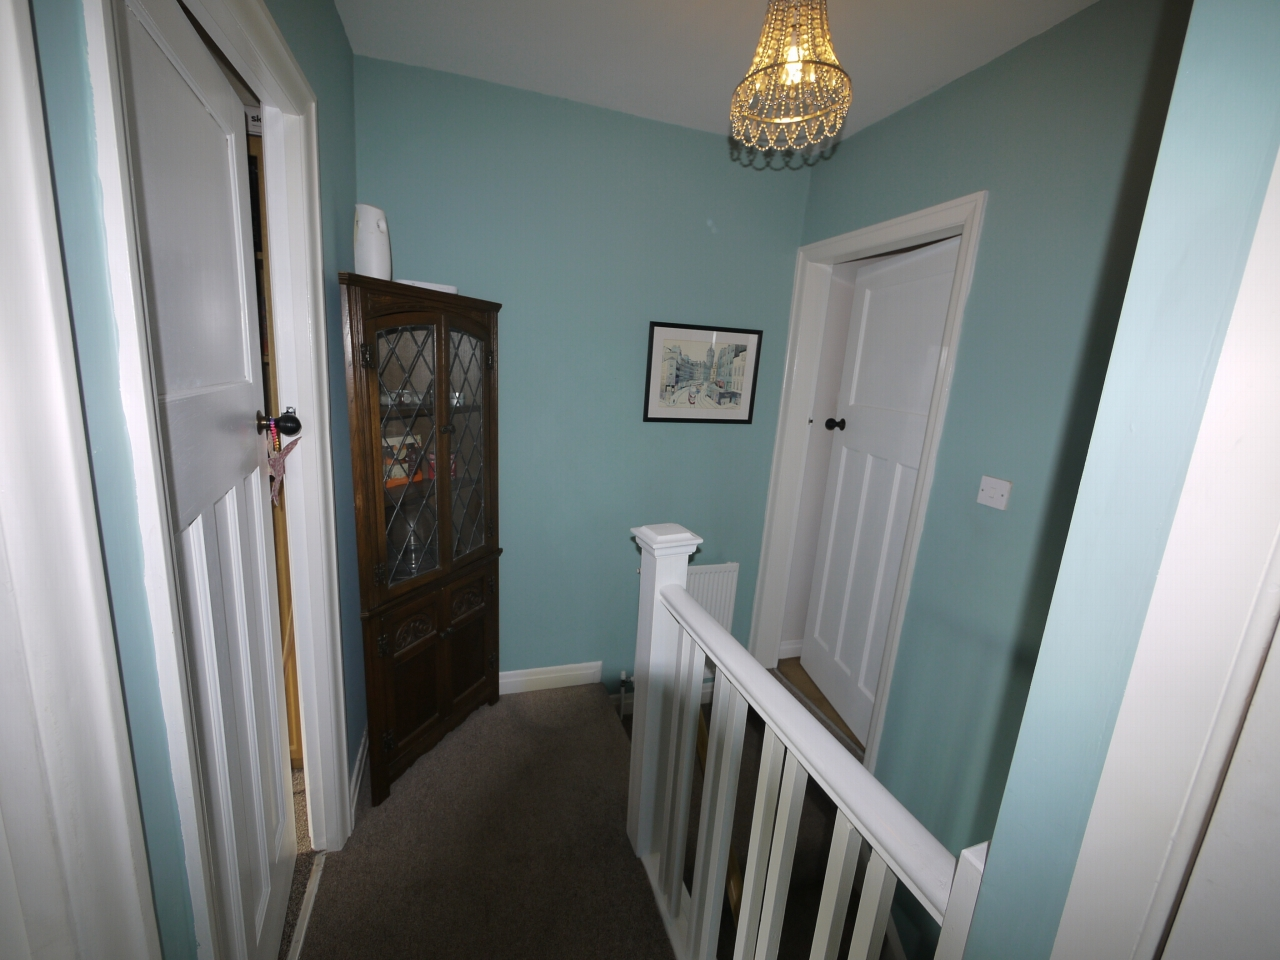 3 bedroom semi-detached house SSTC in Brighouse - Photograph 7.